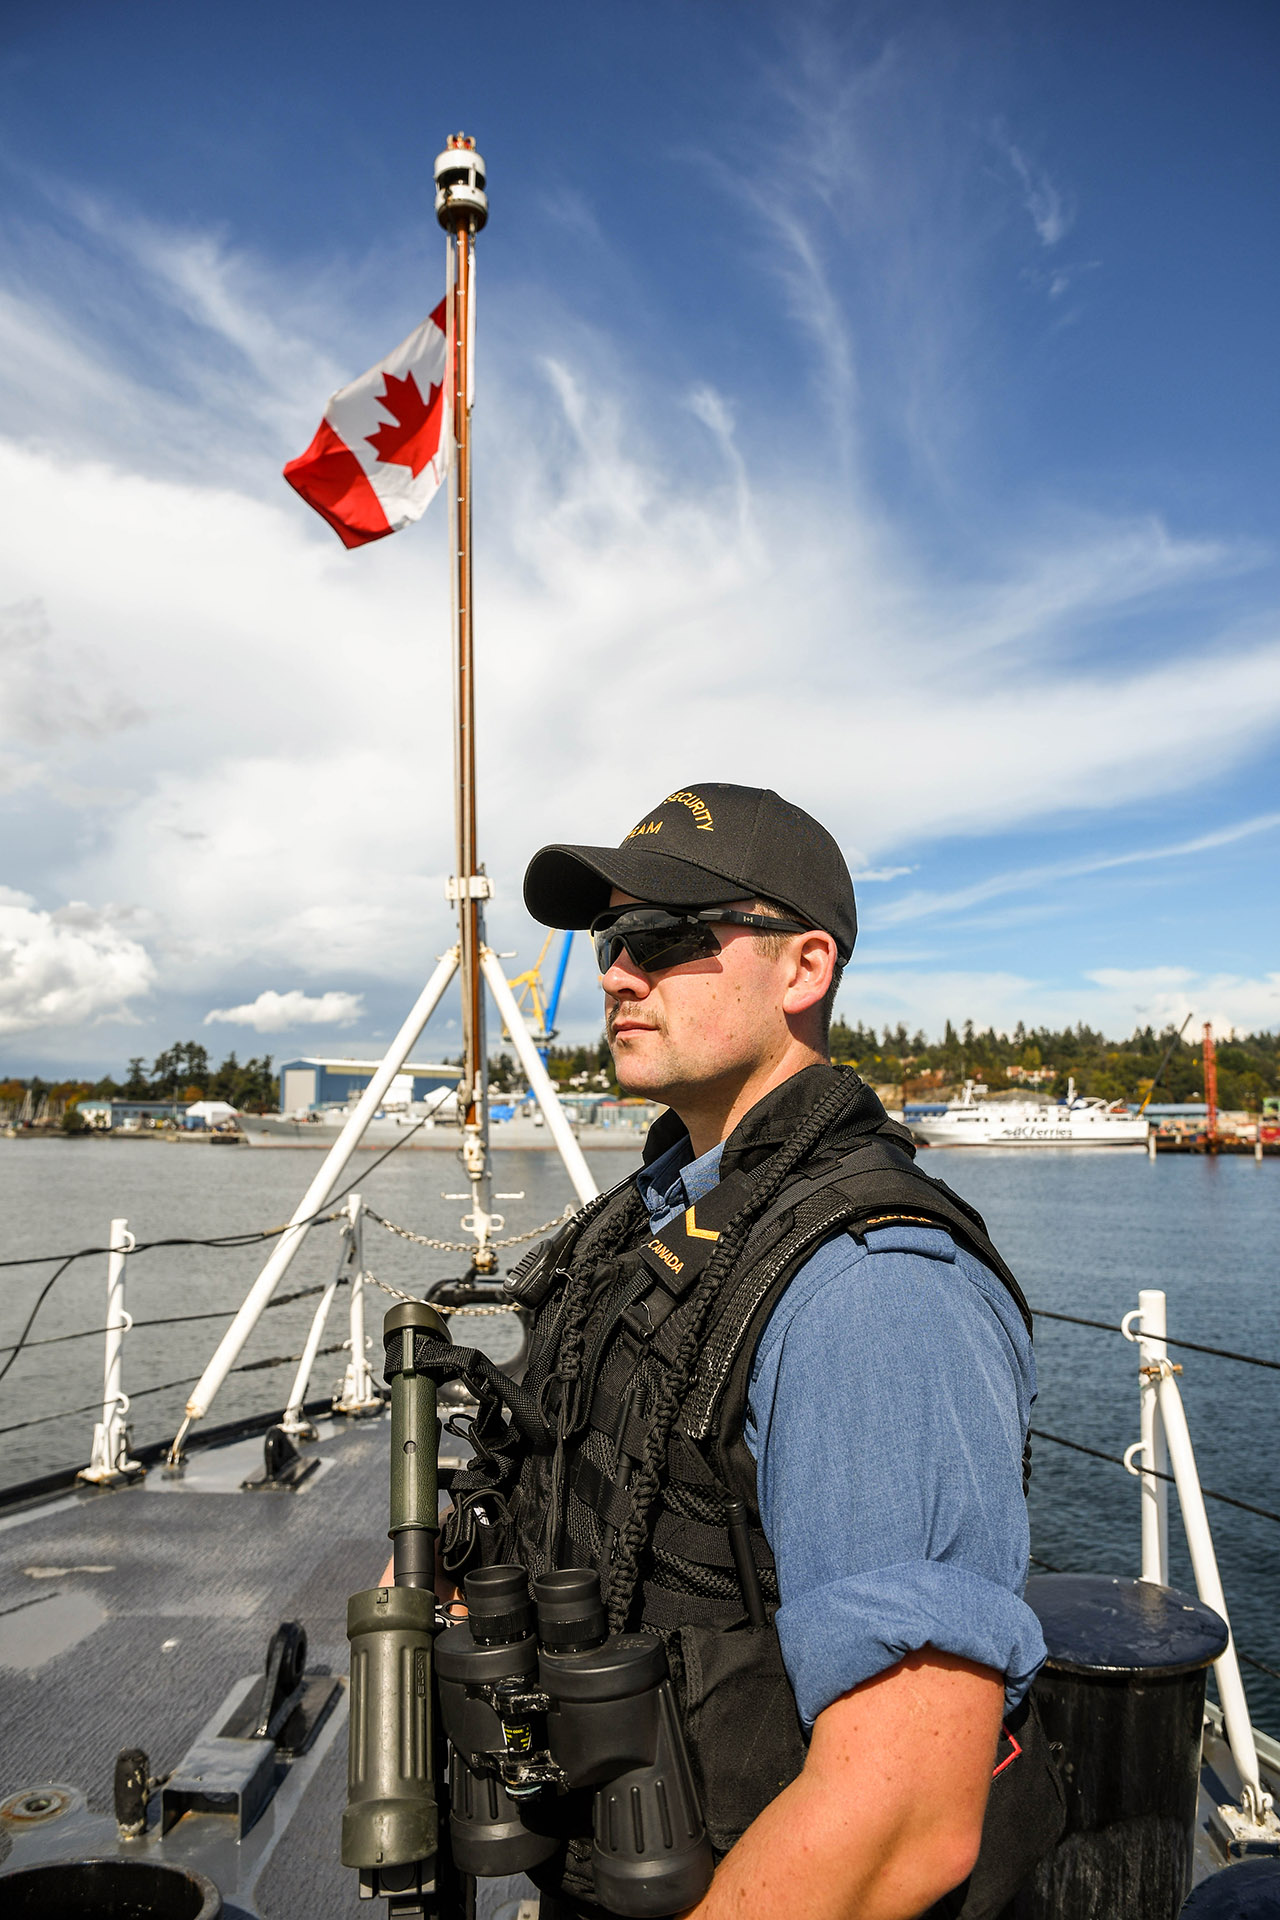 AB Darcey Tieincy on watch as upper deck sentry aboard HMCS Vancouver during the sea training validation phase prior to deployment.